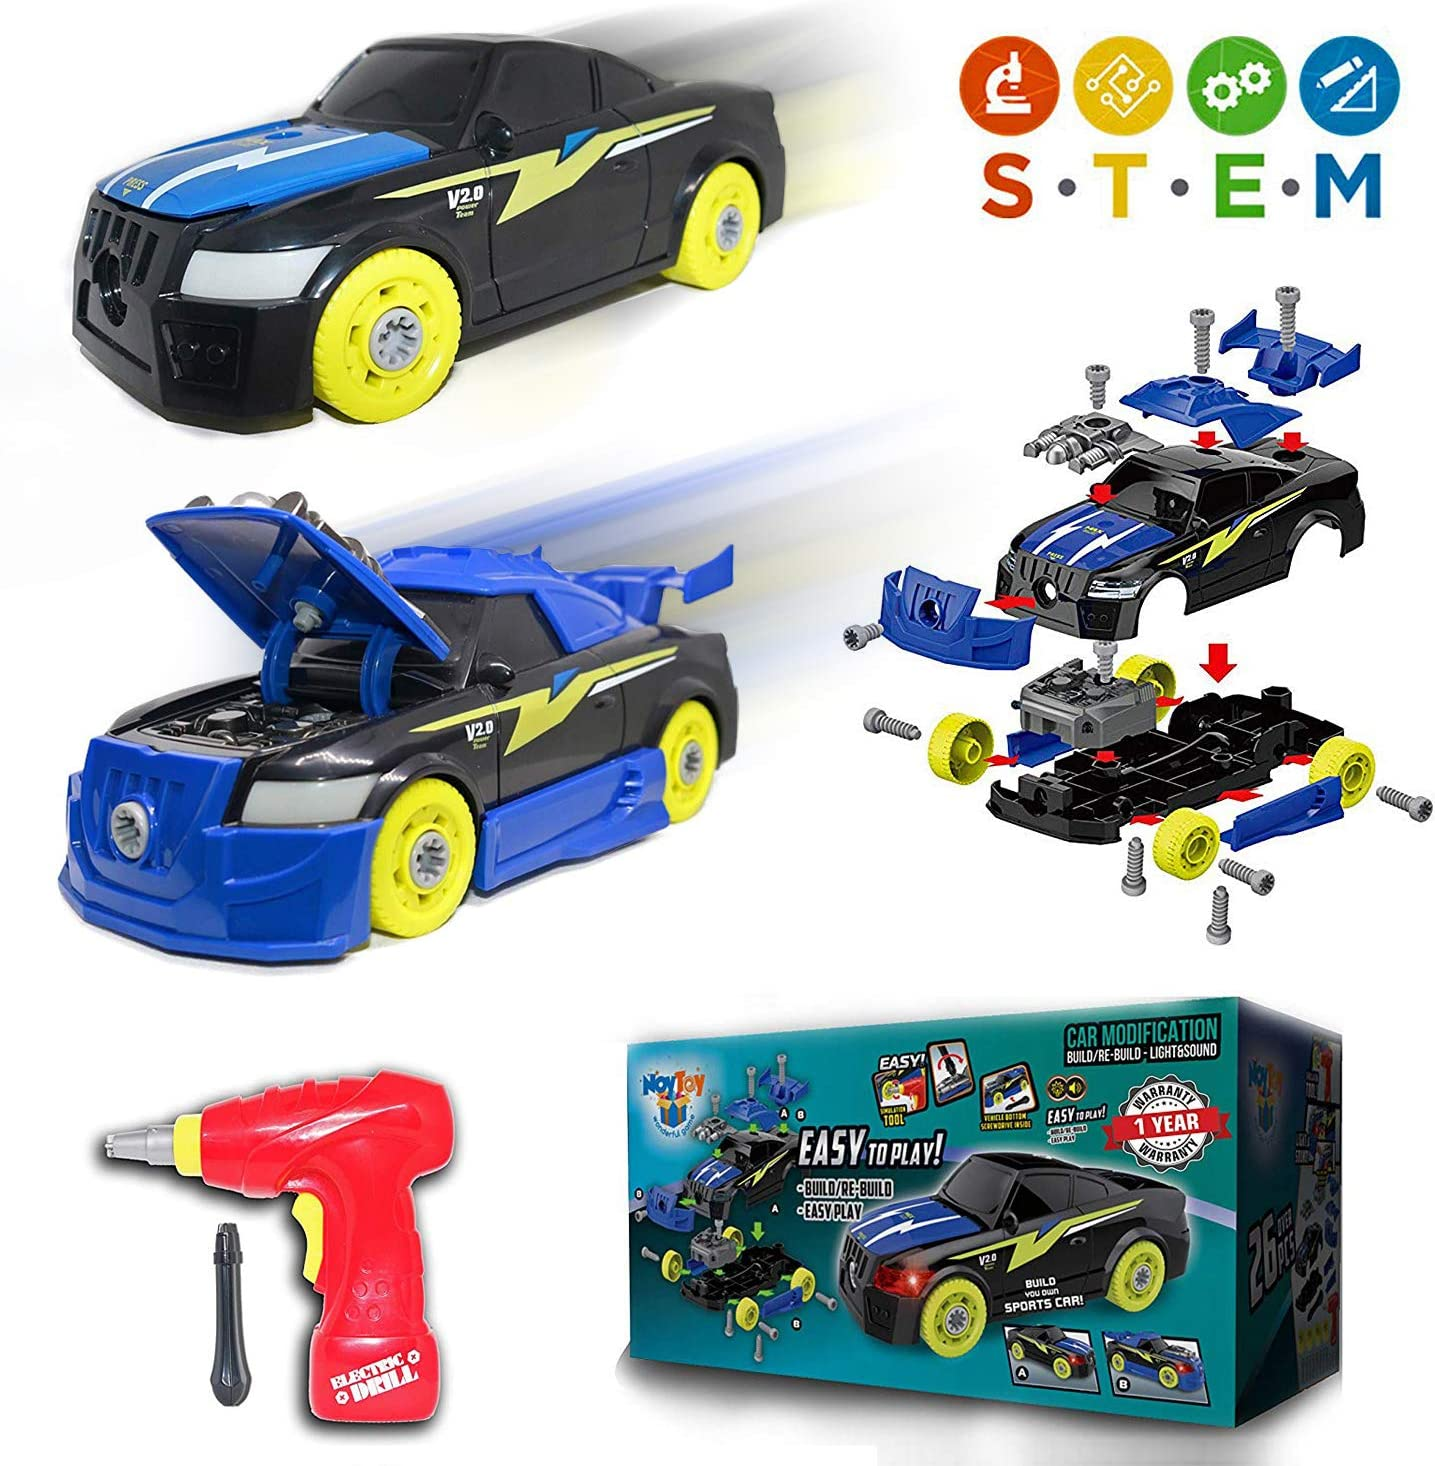 NOYTOY Take Apart Toys for Boys - 5 Year Old Boy Toys with Electrical Drill Tool ( 2 in 1 ) Assembly Car Toys - 26 Pcs , Gift Sets for Kids - Age 3 4 5 6 7 Year Old Boys